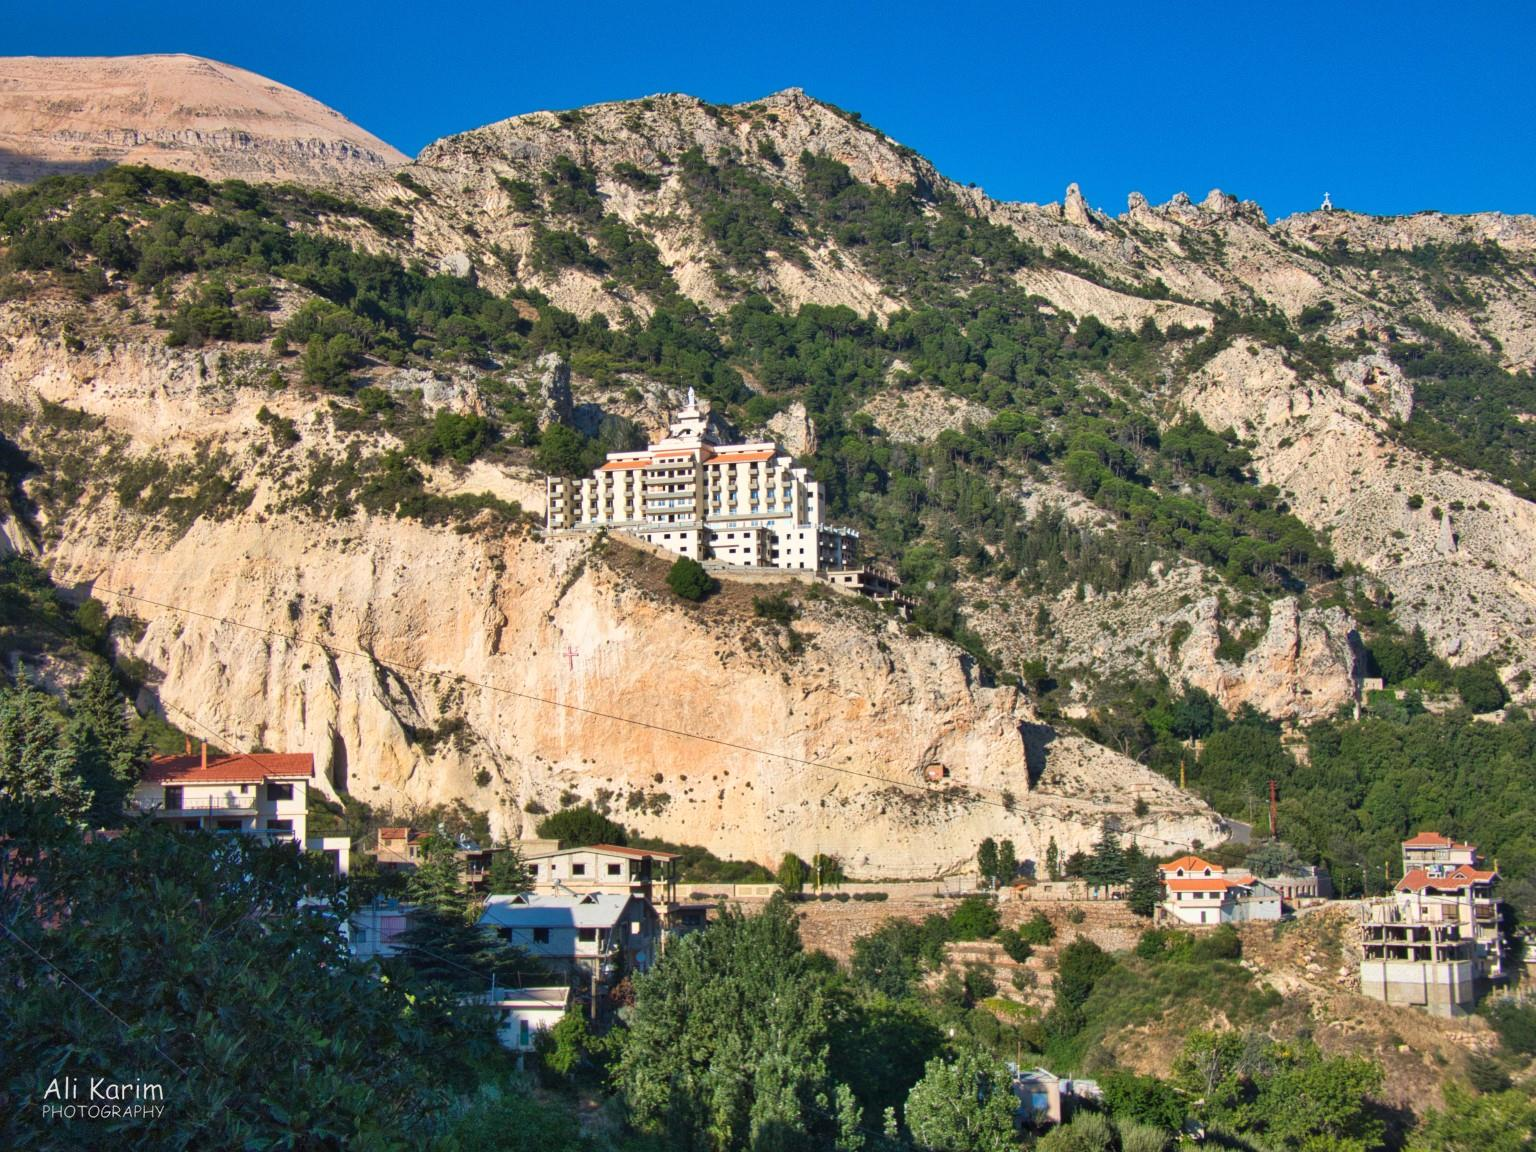 Bsharri and Quadisha Valley Monastery near Bsharri; note the cross on the cliff below the building, and on the mountain above